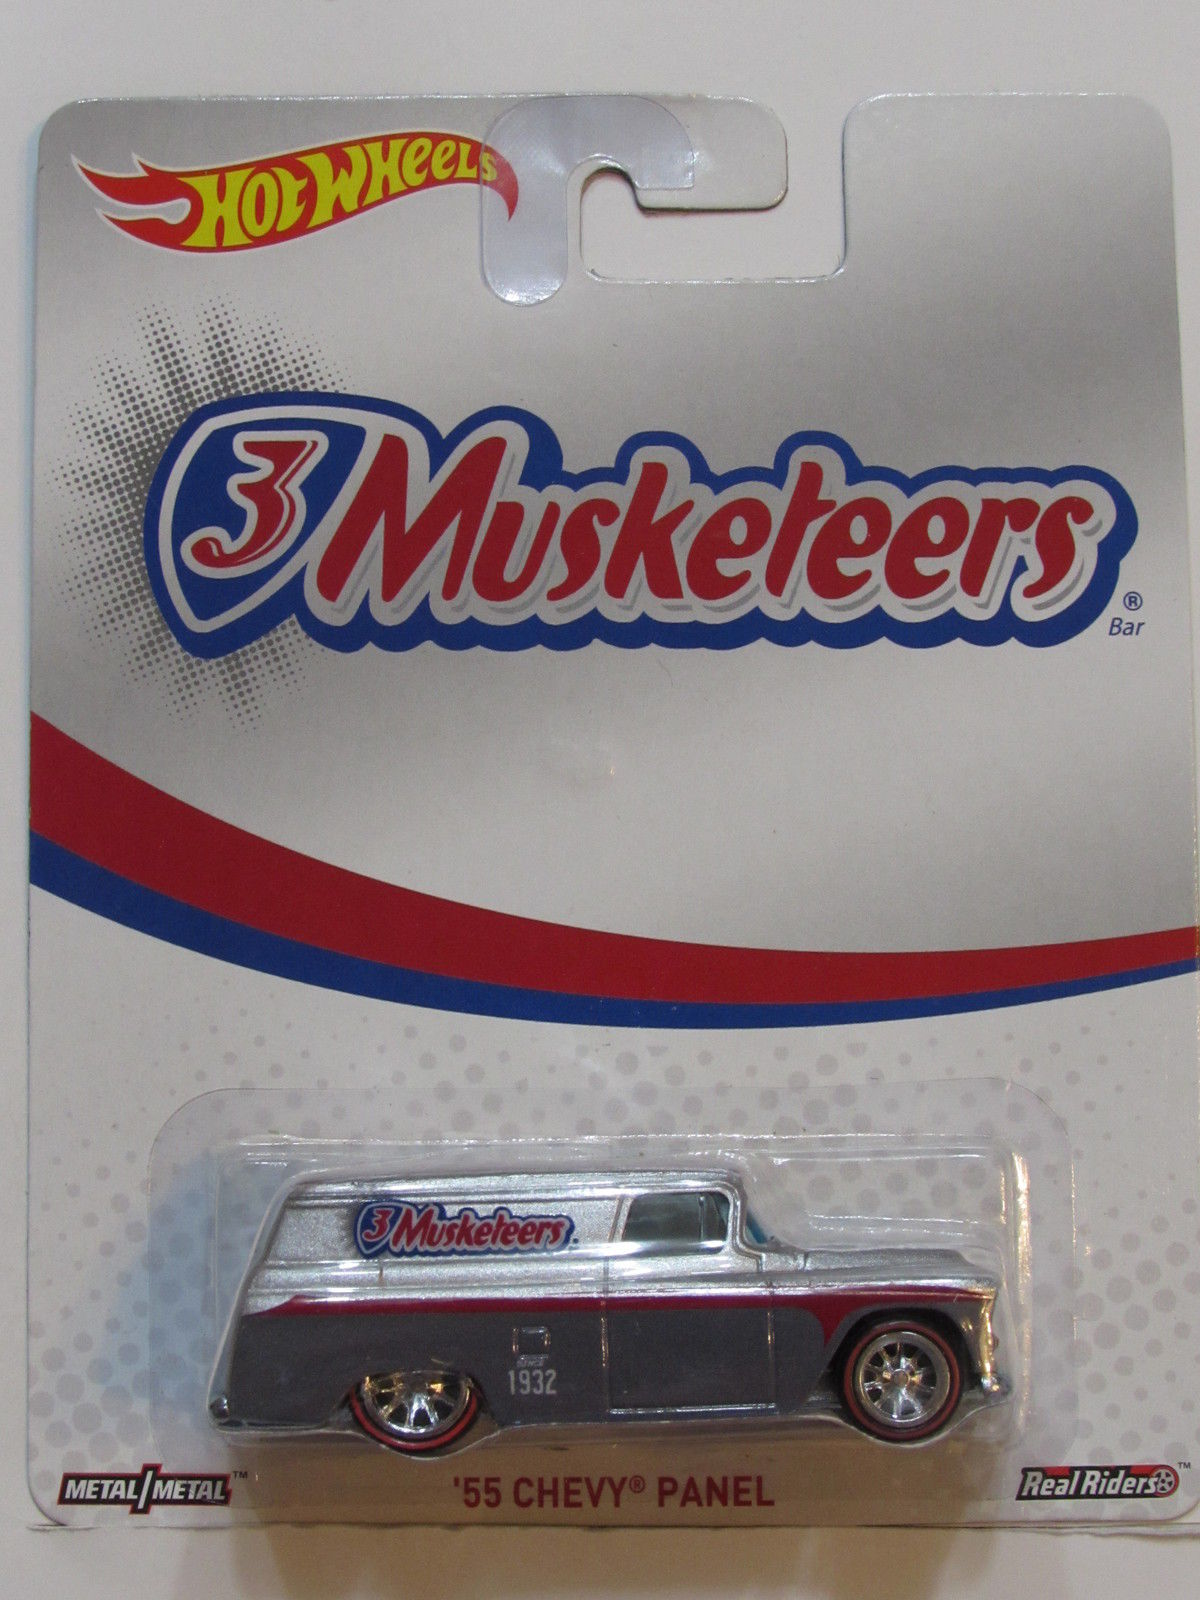 HOT WHEELS 3 MUSKETEERS '55 CHEVY PANEL